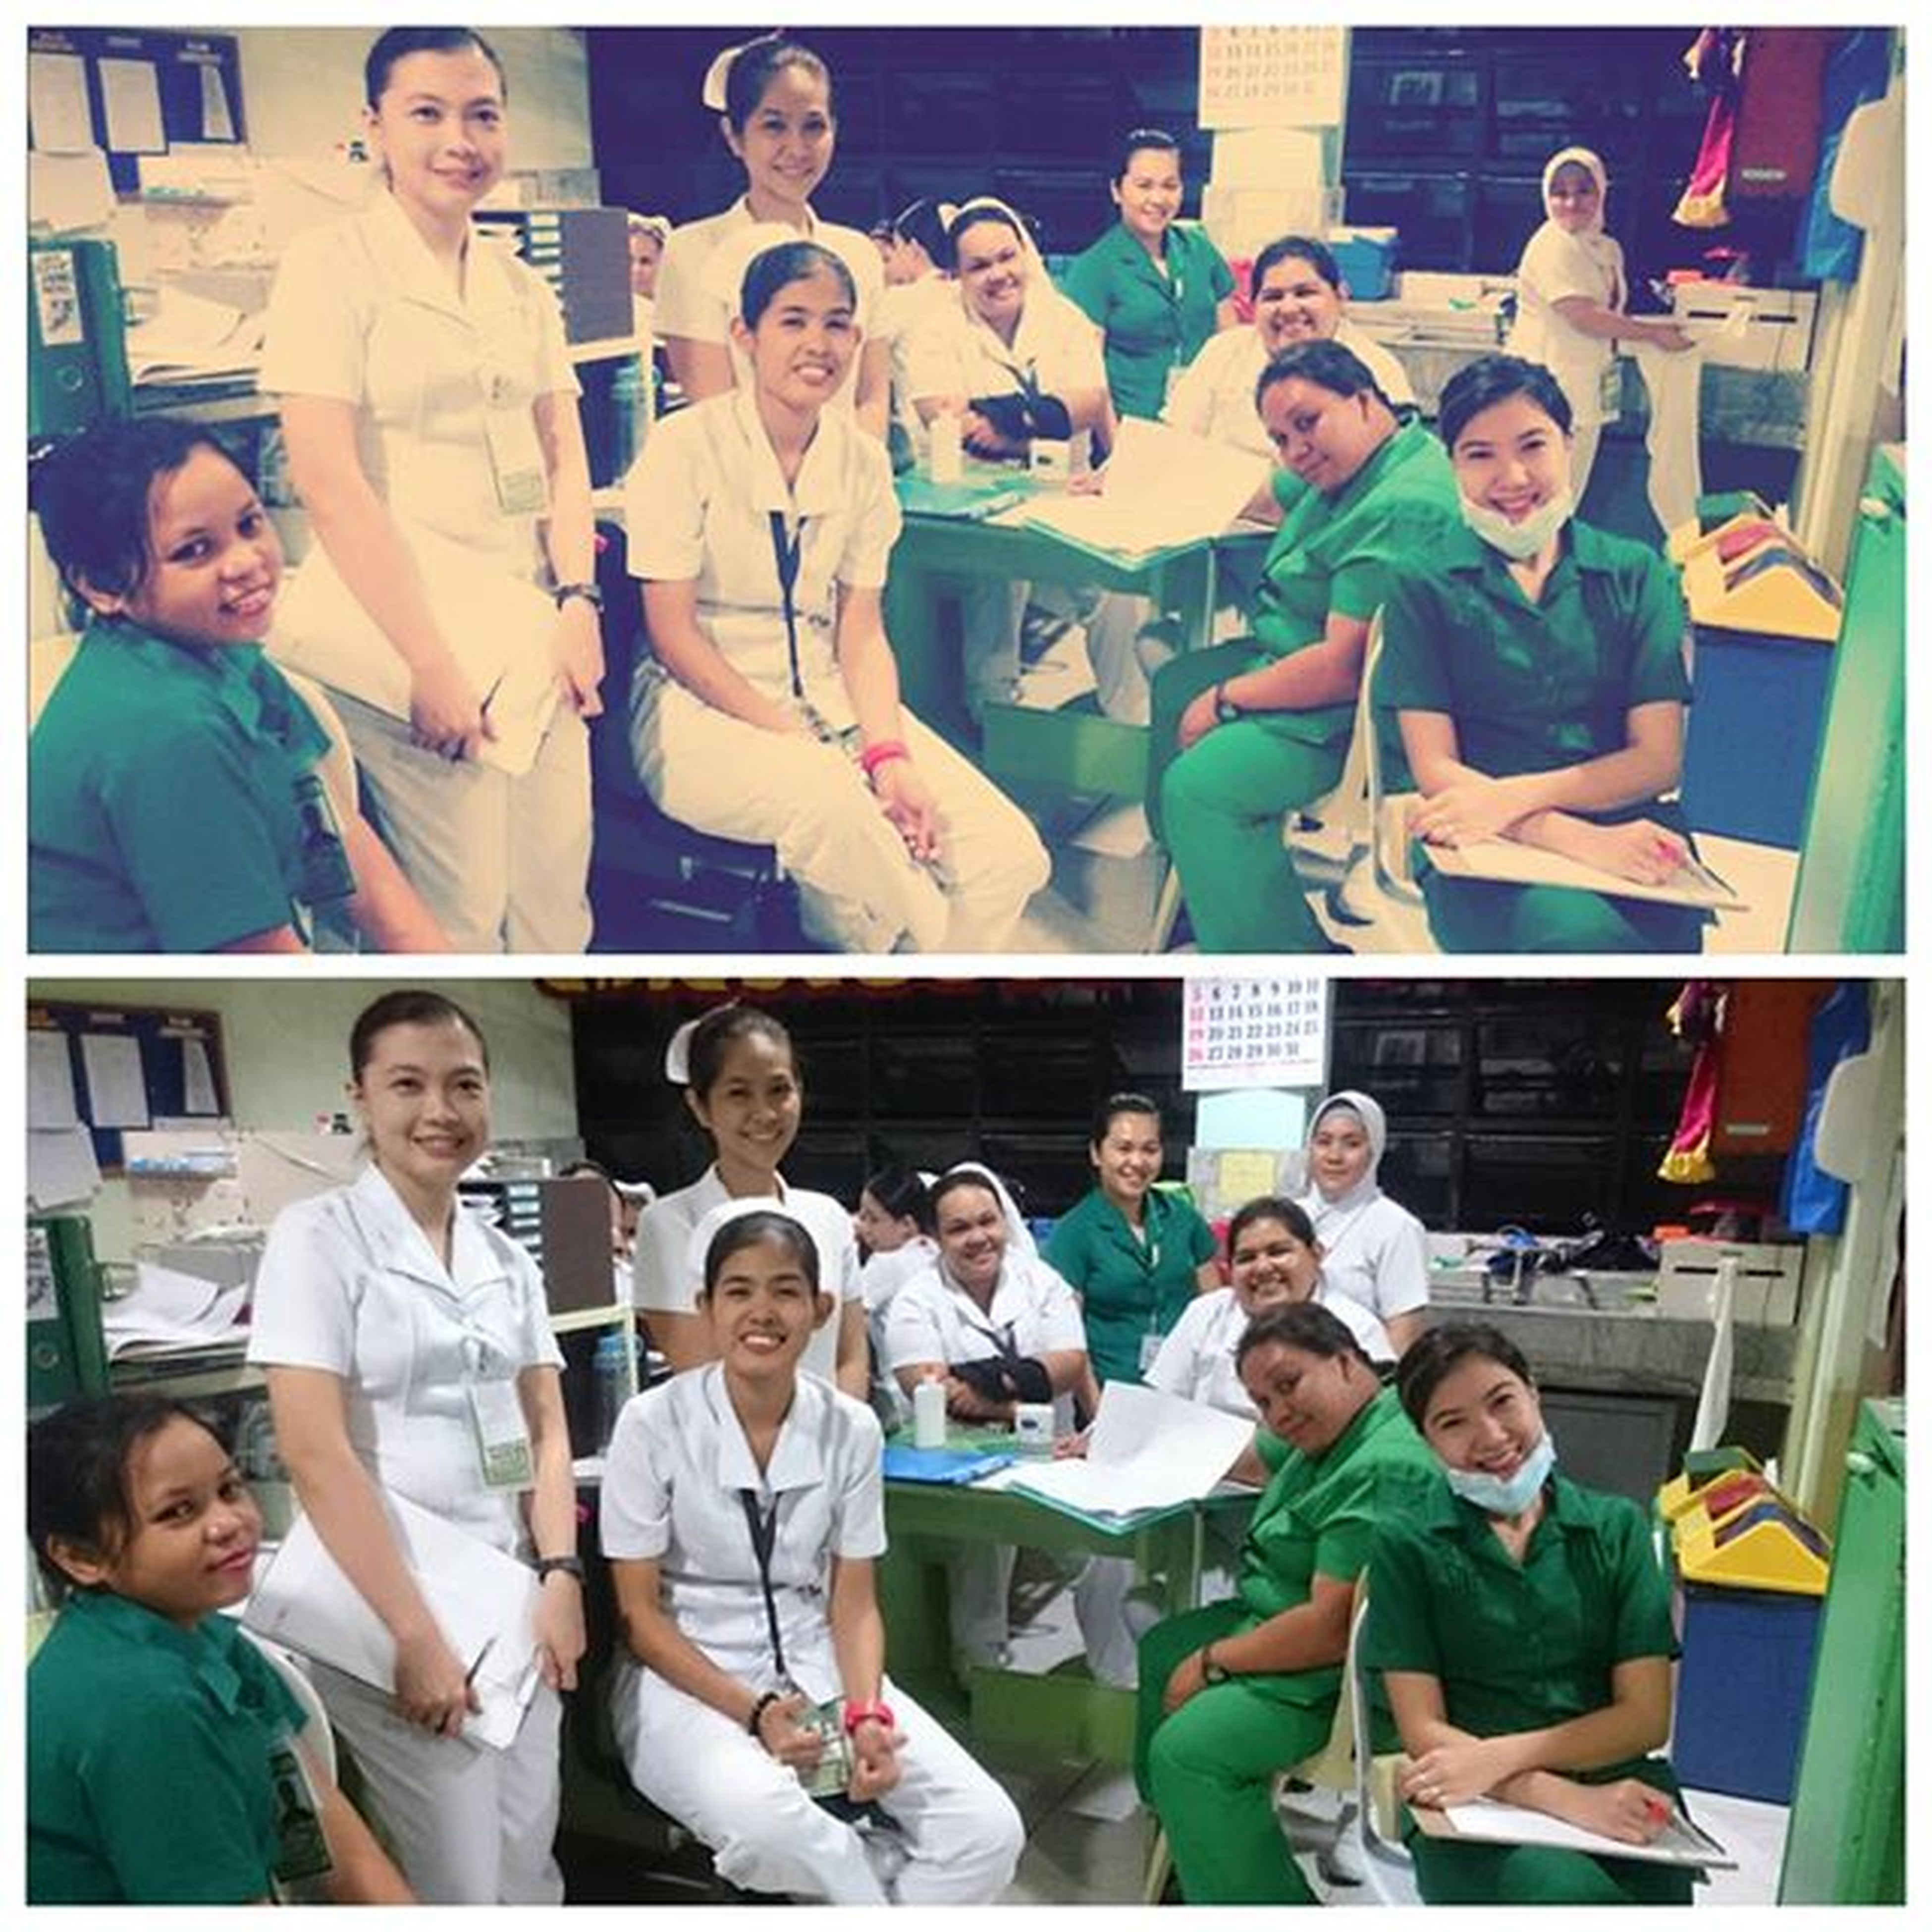 Our first Post NOD pic after endorsement. THE iNAUGHTY AND kittyNICE TAG TEAM PLUS HYPER-jaydeeSLEXIC = Code Blue. Another SICU trans-in.Peskies all the way. Outgoing Surgerypeskies Teamsurgery Blackcoffee Committedtocare Surgery Skillshare SonyGLens XPERIA ICAN DemandGreat BeMoved